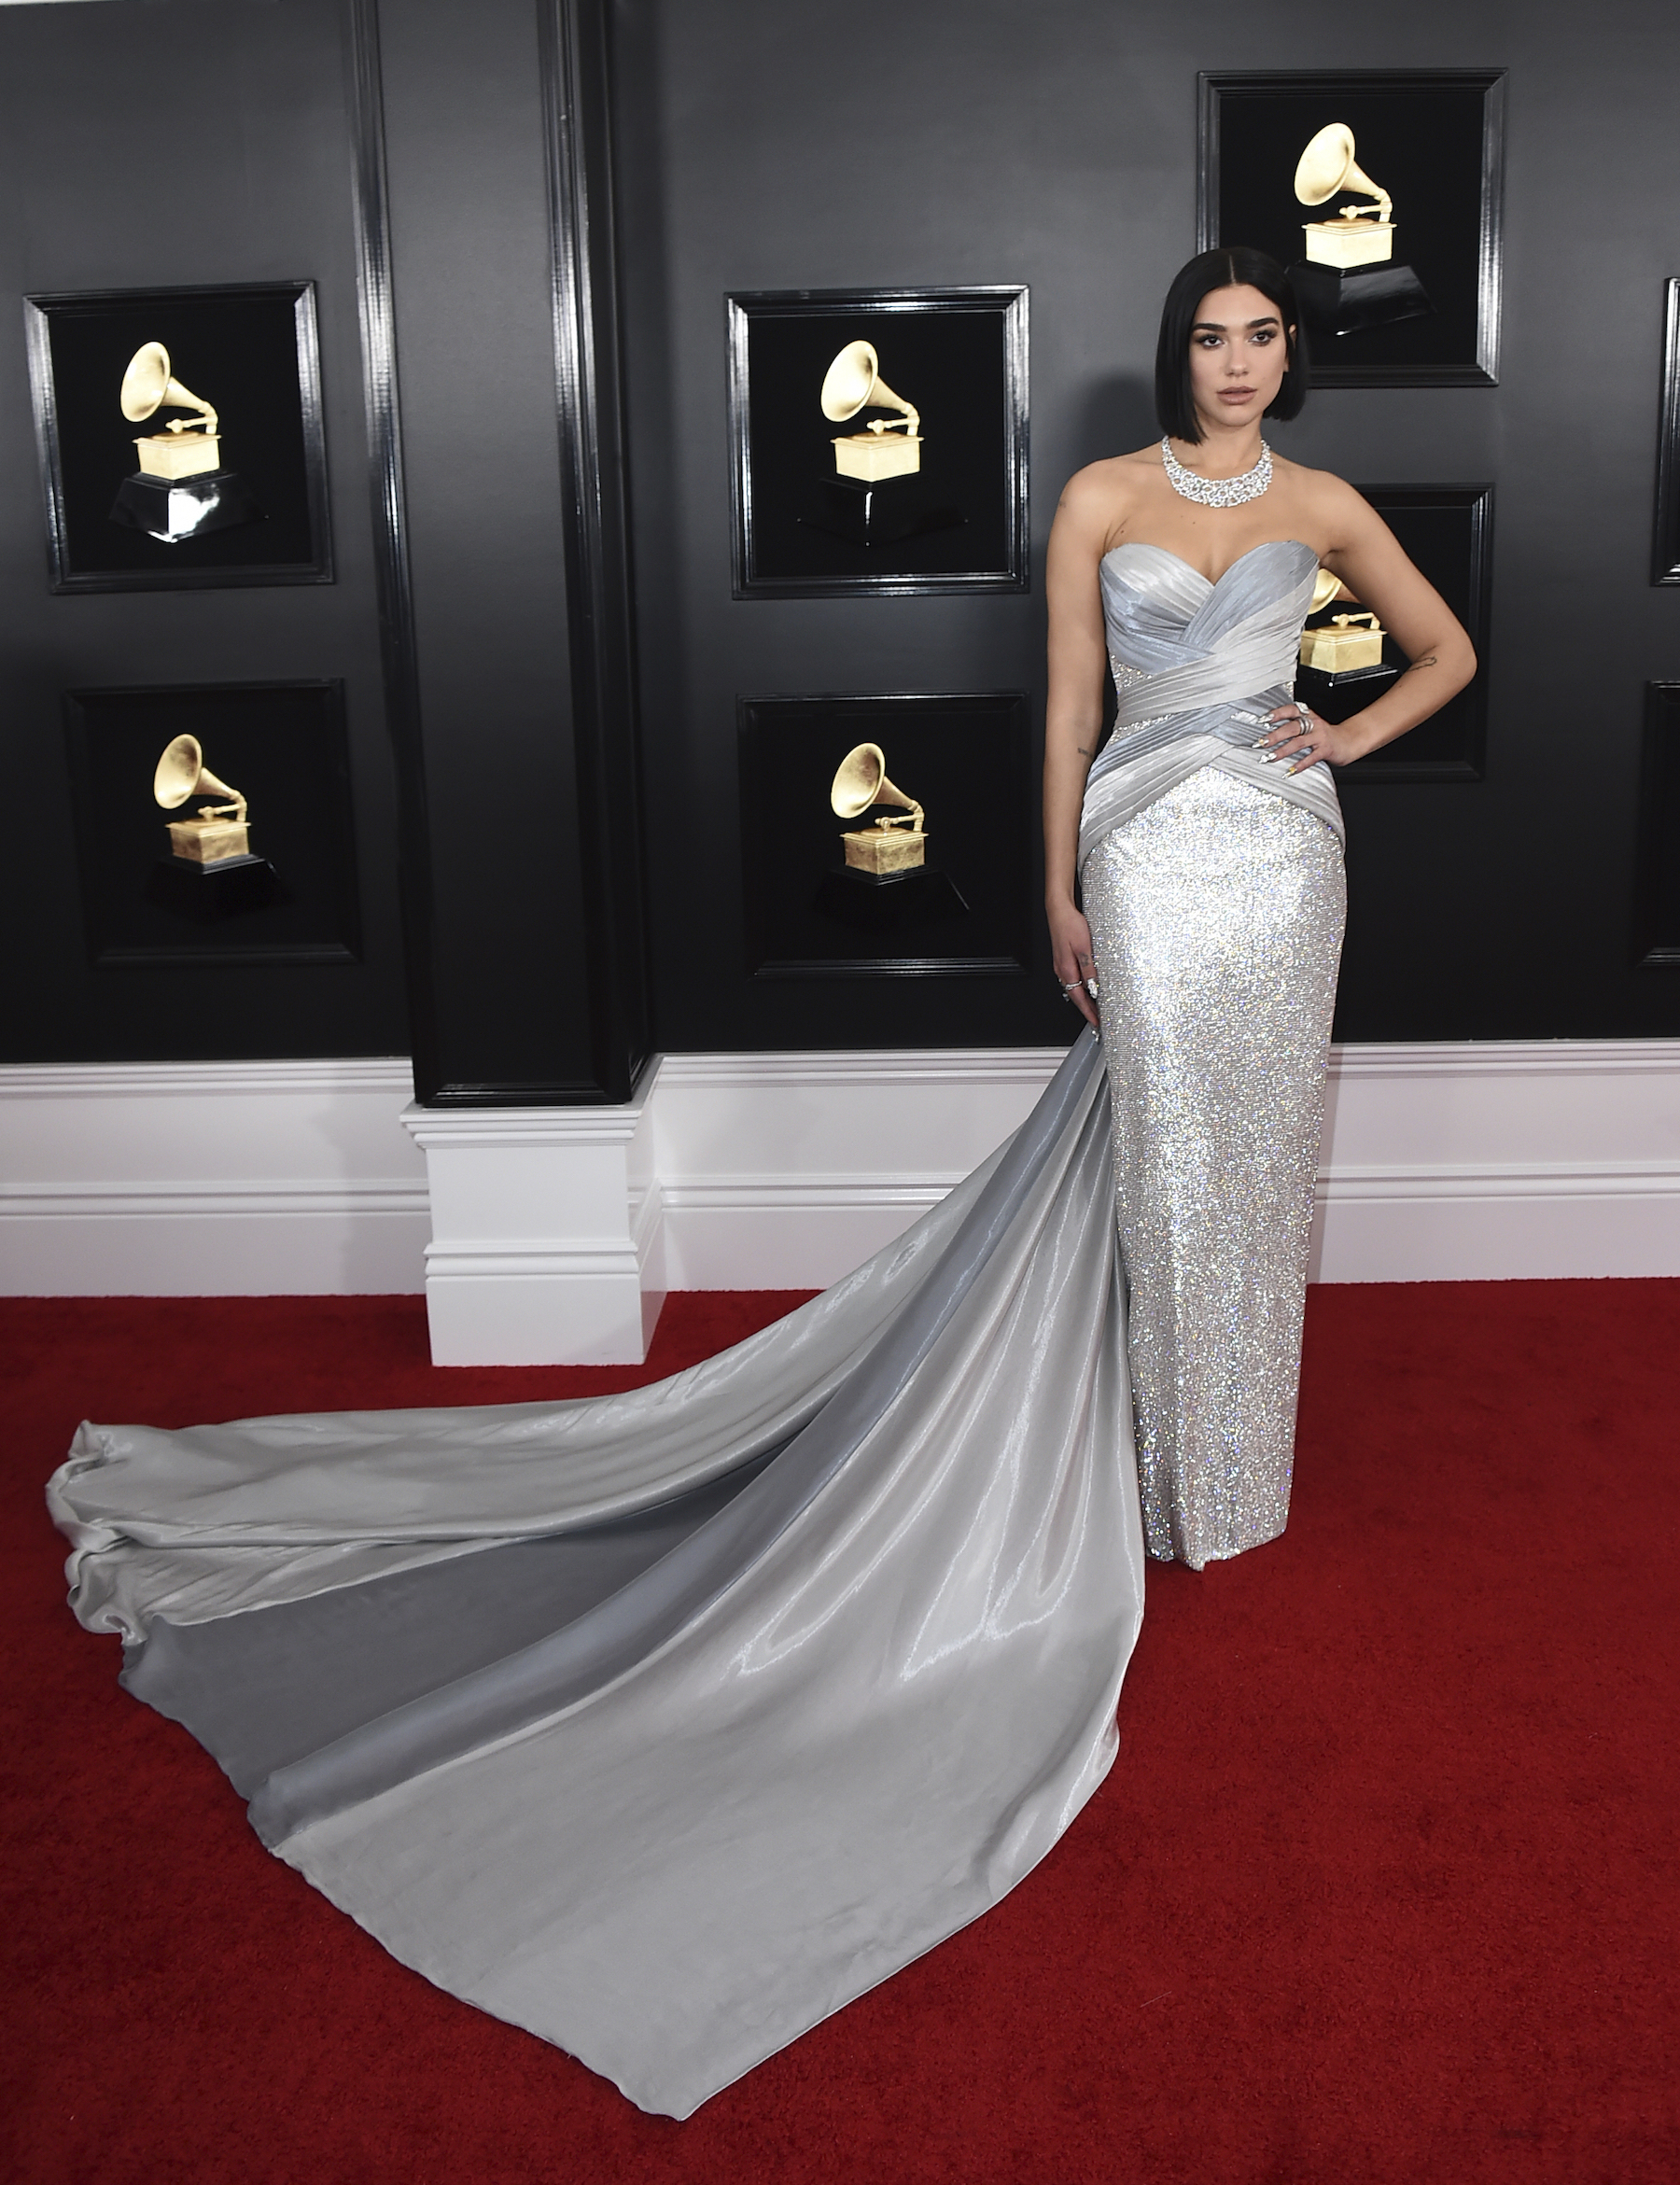 "<div class=""meta image-caption""><div class=""origin-logo origin-image ap""><span>AP</span></div><span class=""caption-text"">Dua Lipa arrives at the 61st annual Grammy Awards at the Staples Center on Sunday, Feb. 10, 2019, in Los Angeles. (Jordan Strauss/Invision/AP)</span></div>"